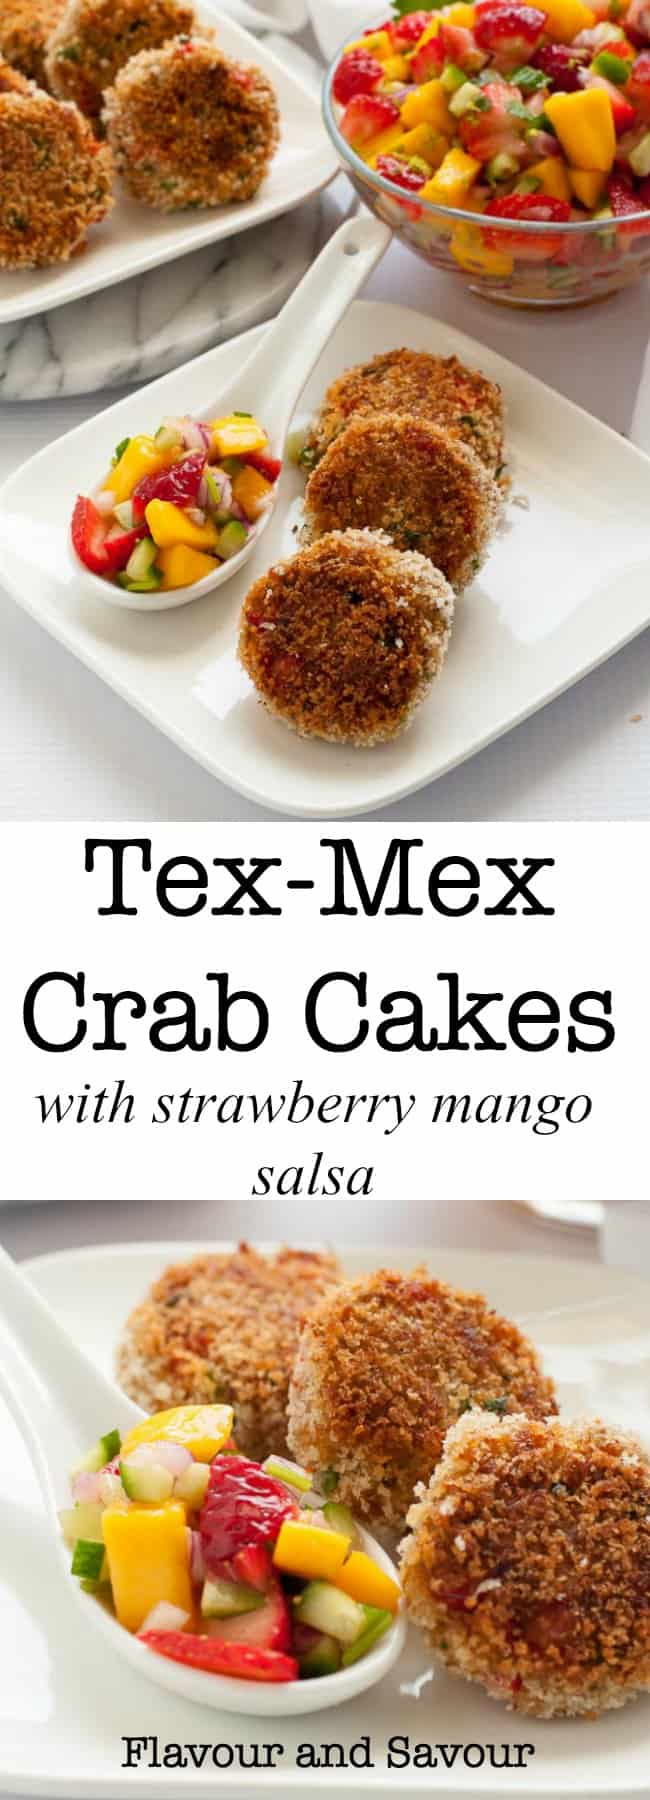 These CrispyTex-Mex Crab Cakes are packed with fresh crab, red pepper, onion, garlic, cilantro and jalapeño. Delicious served with Strawberry Mango Salsa.